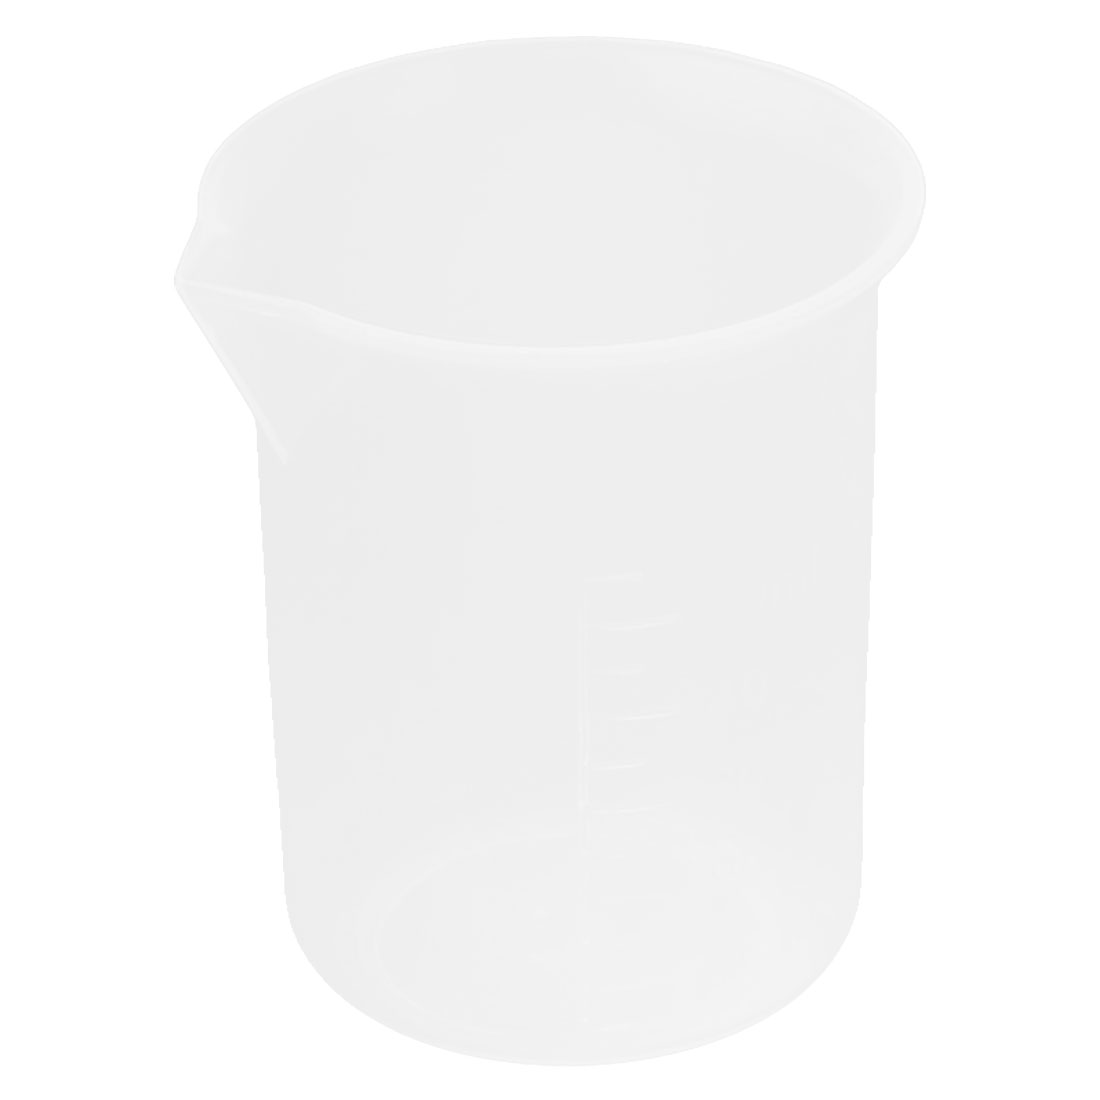 50mL Plastic Science Experiment Measuring Graduated Beaker Cup 4.3cm Dia